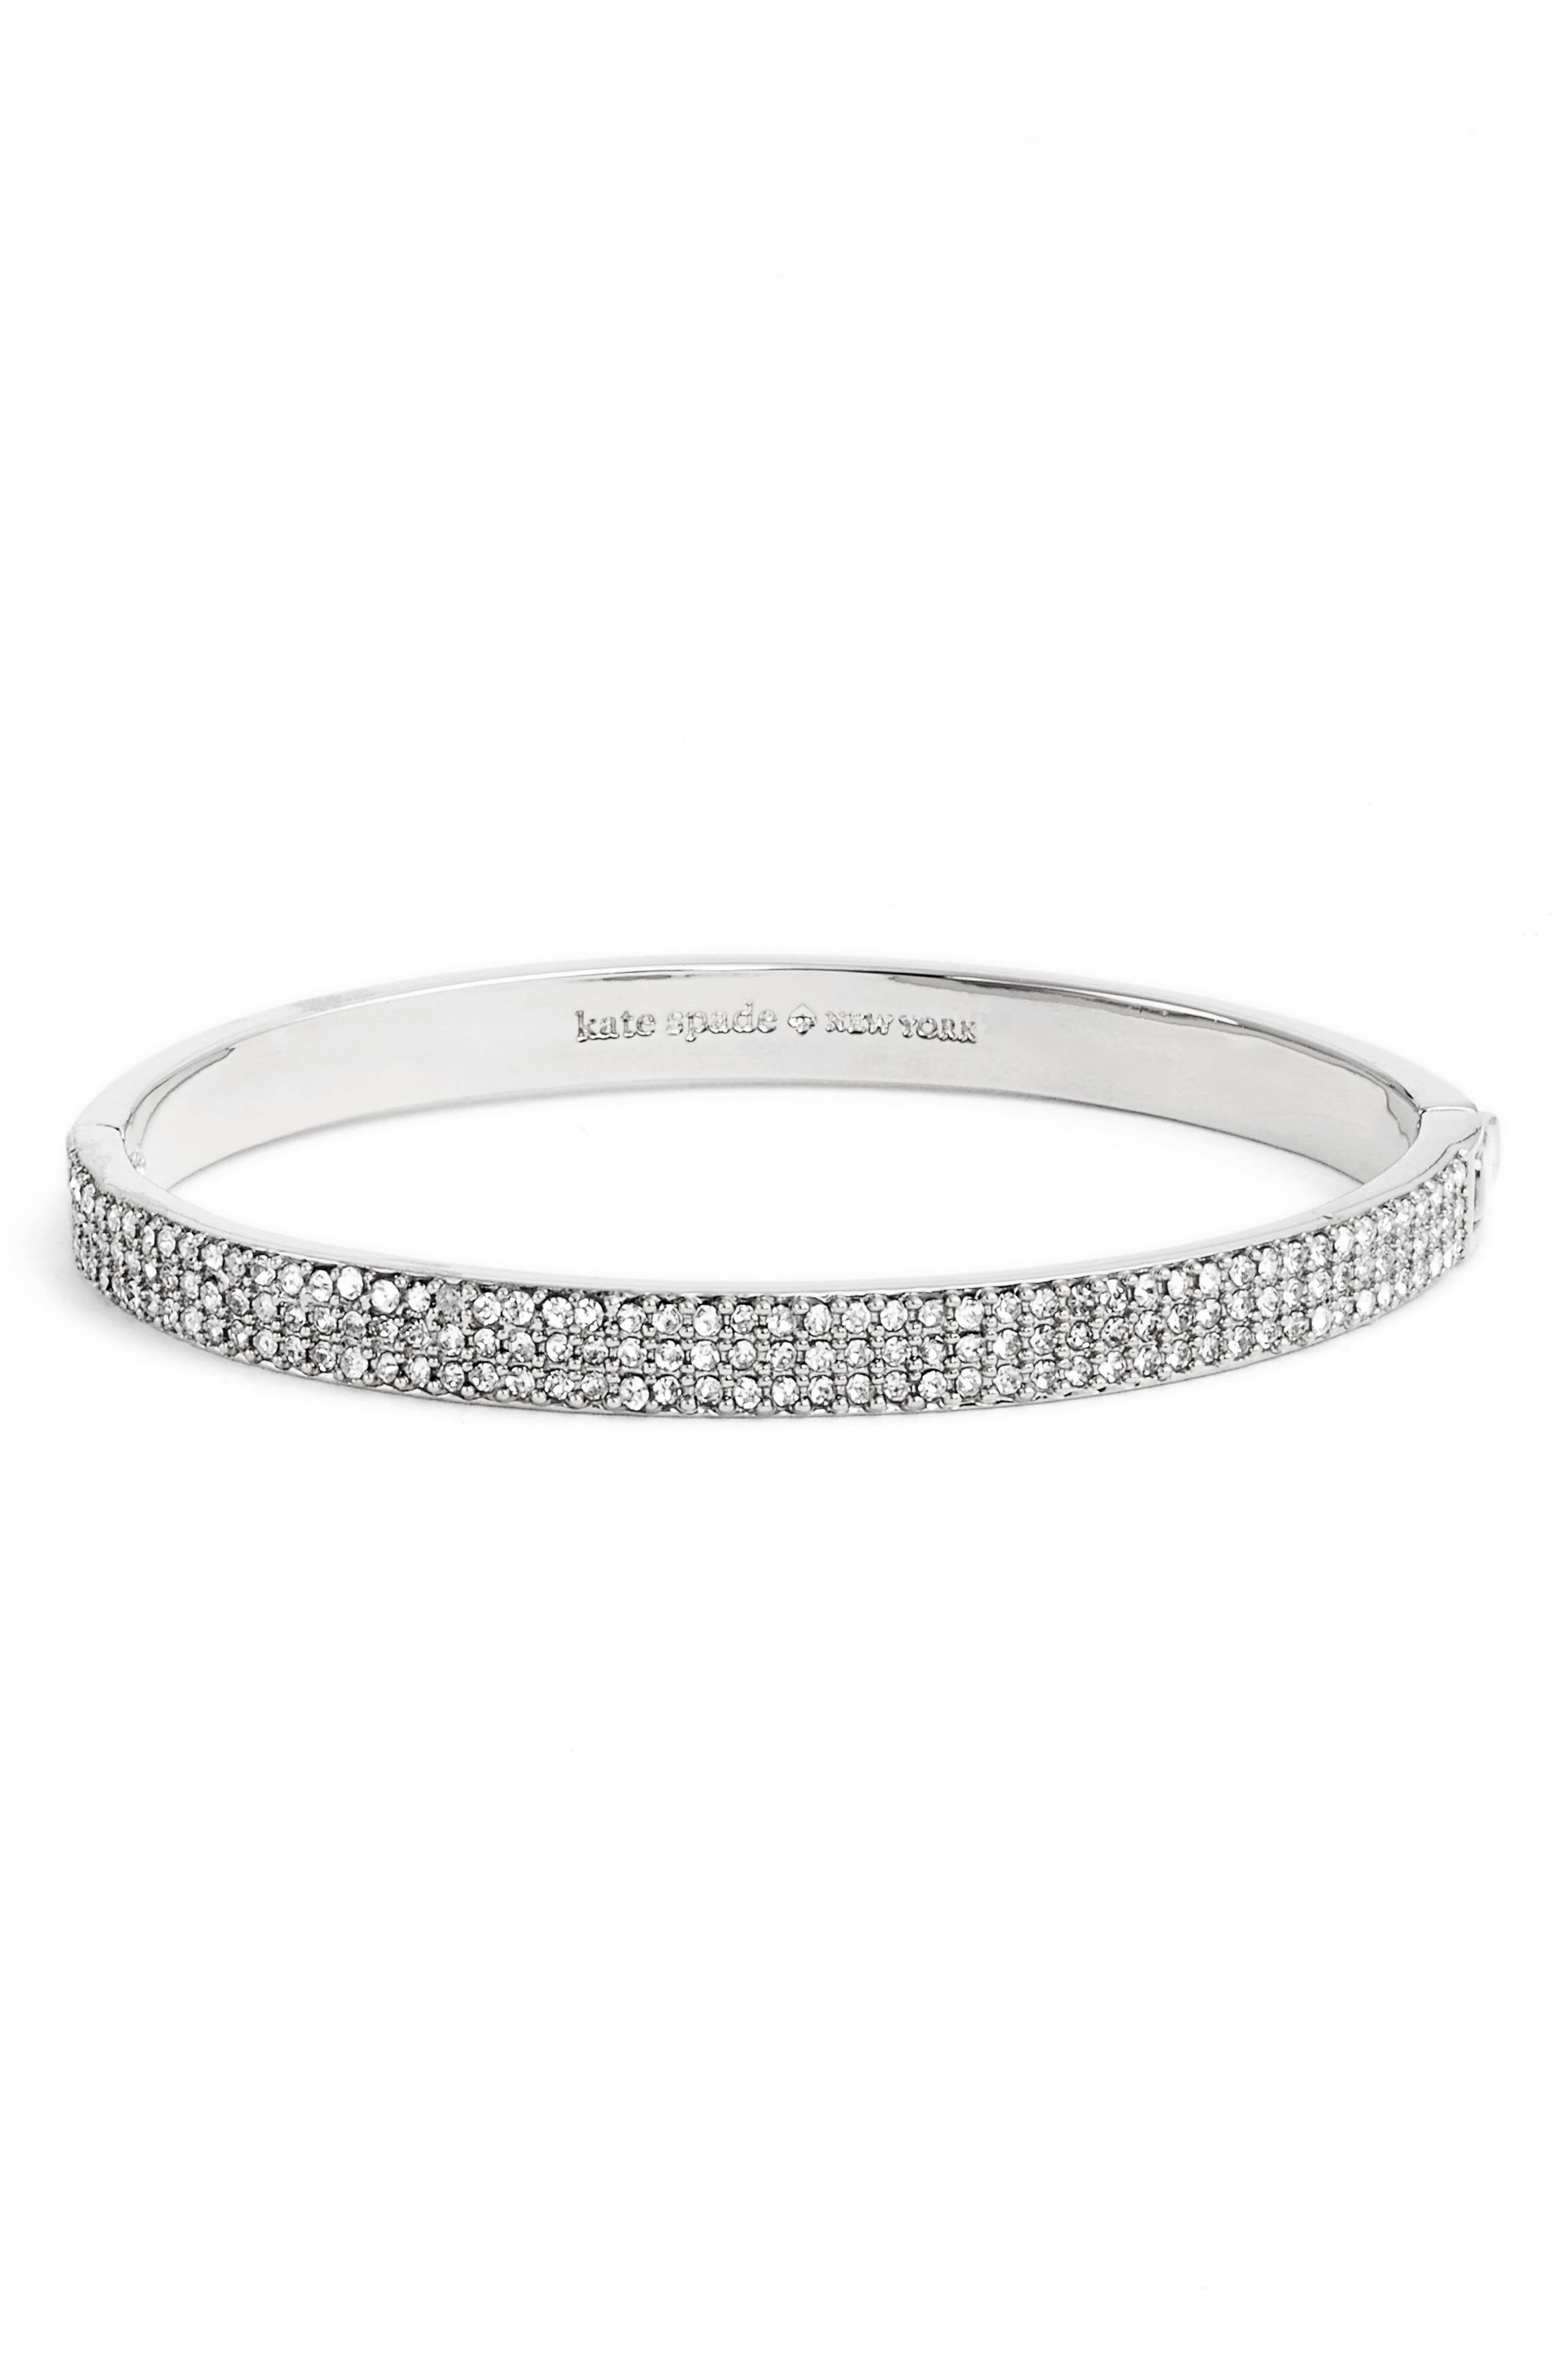 Main Image - kate spade new york heavy metals pavé bangle